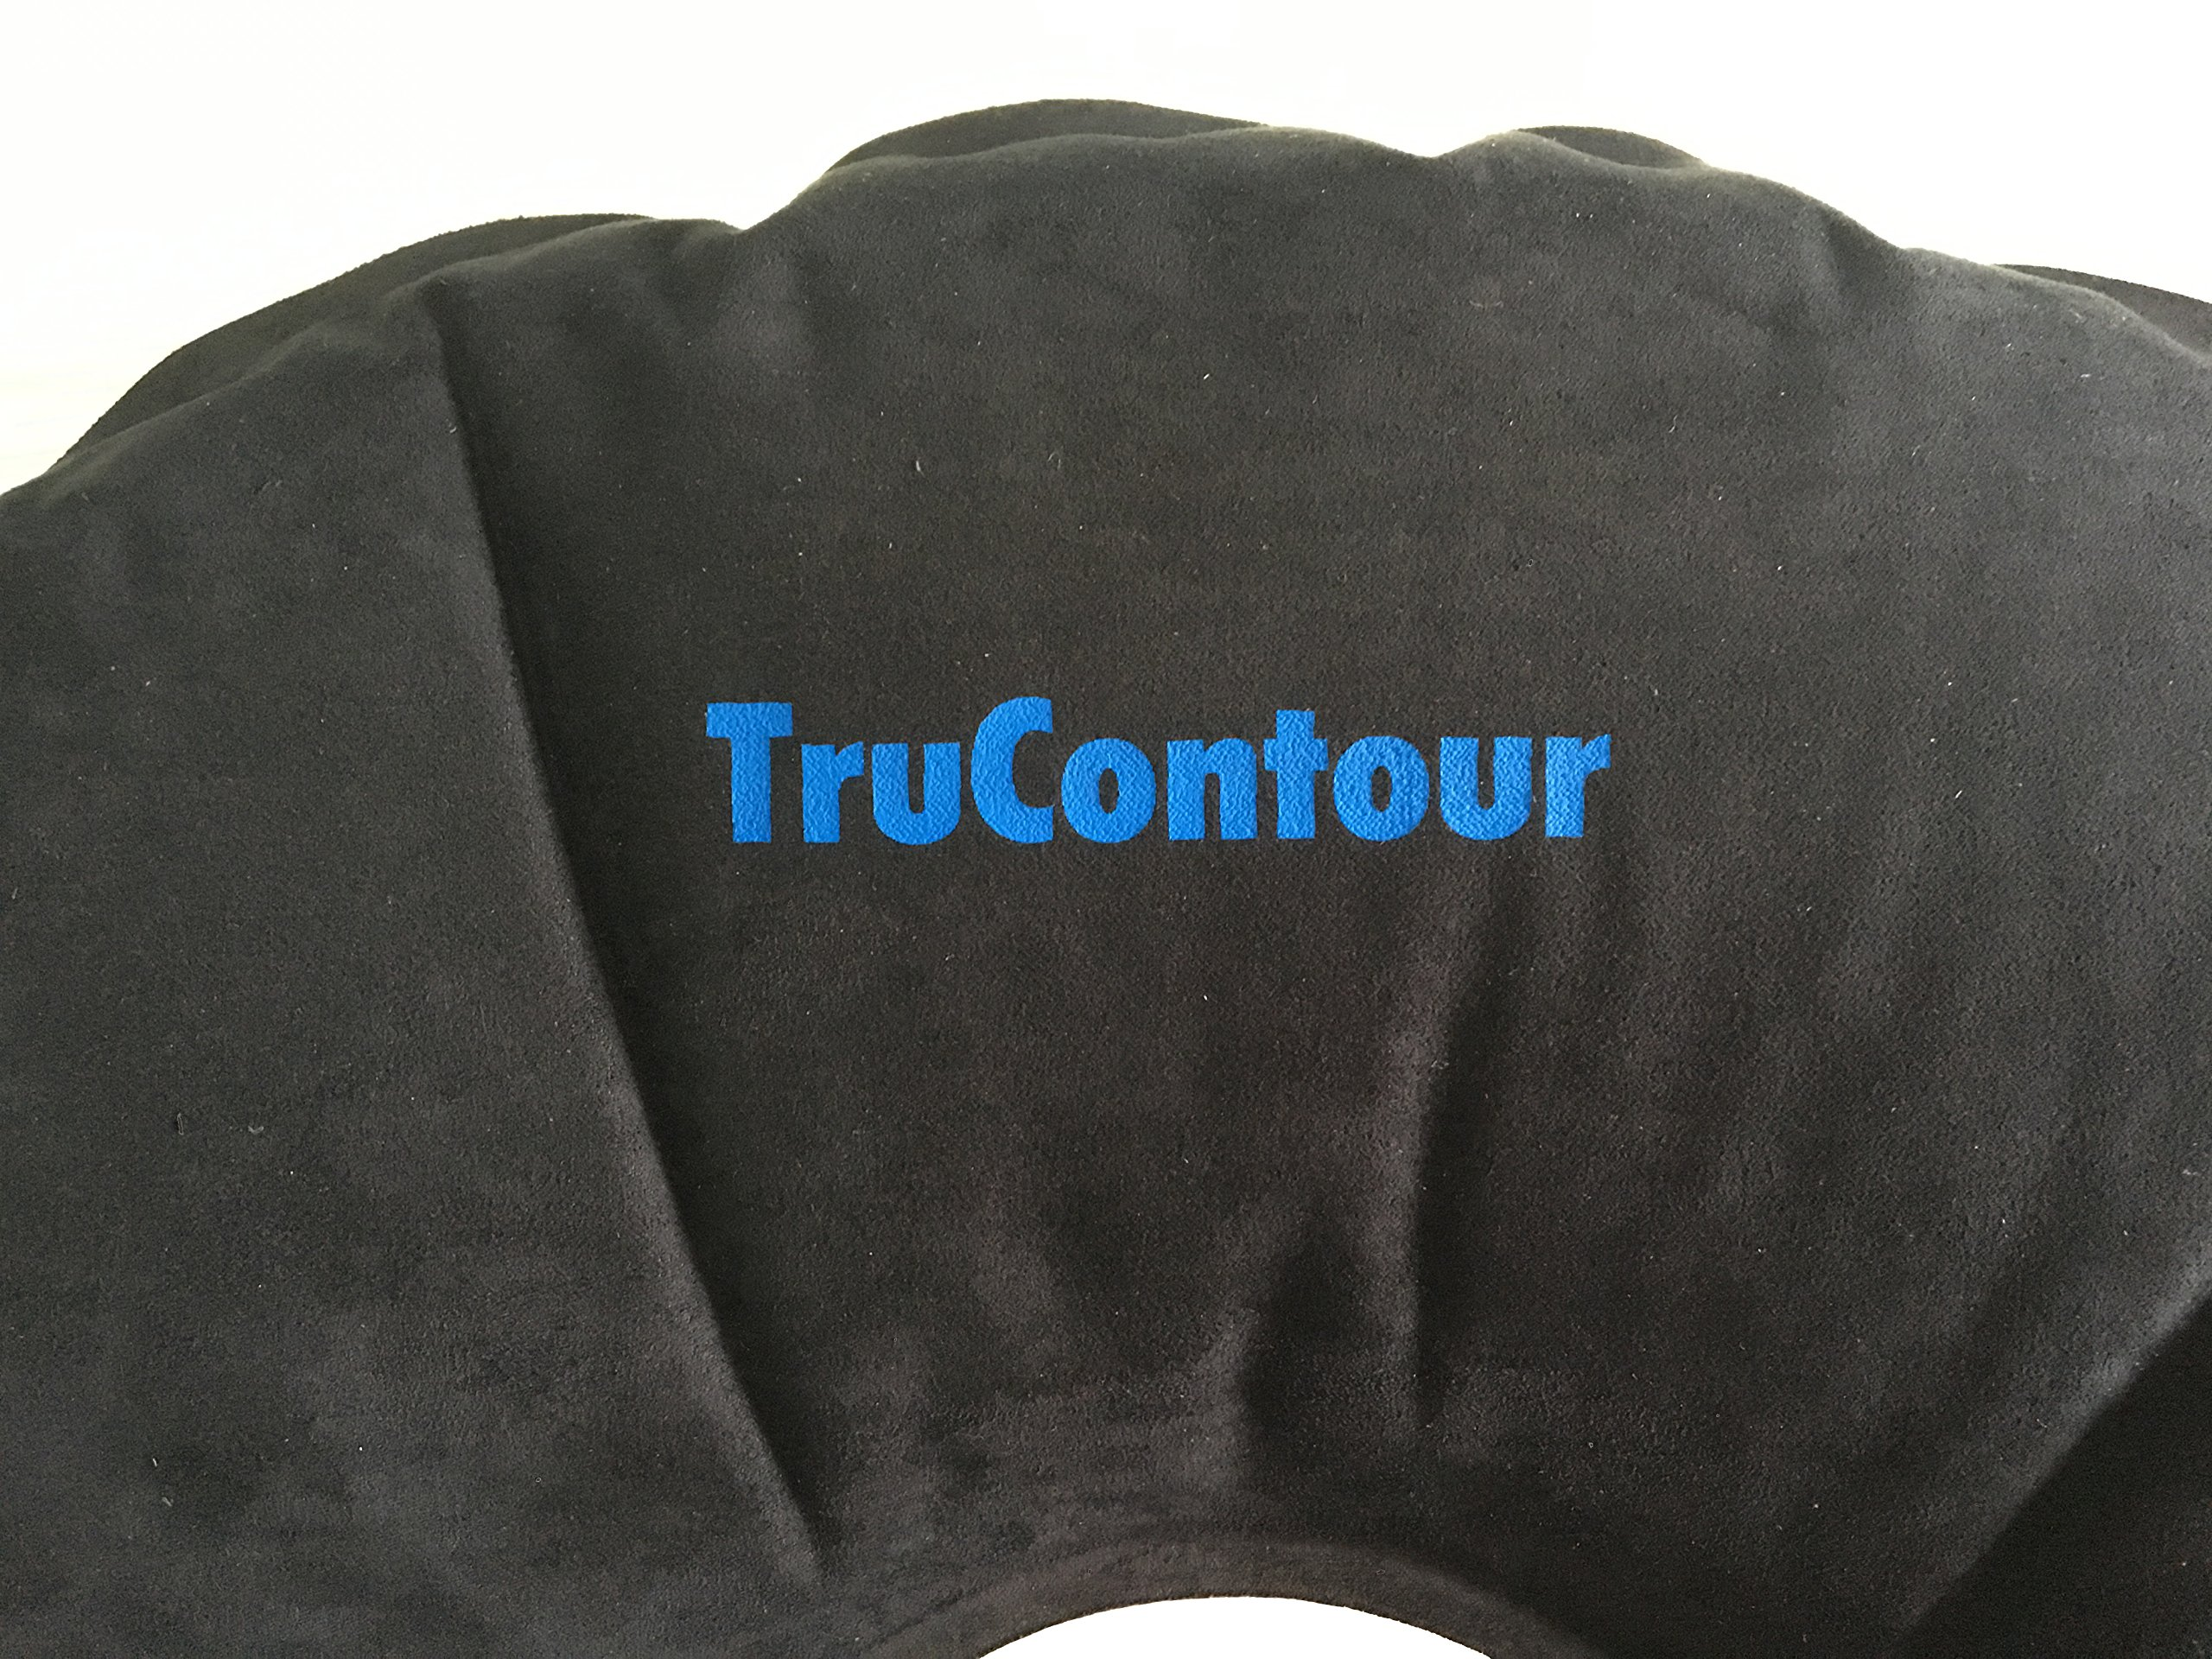 Self Inflatable Donut Cushion for Hemorrhoids, Tailbone, Coccyx, Prostate, Pregnancy, Postnatal and Pressure Sore Issues. Air Pillow Plus Internal Memory Foam Ring. Easy to Transport. (Black) by TruContour (Image #6)